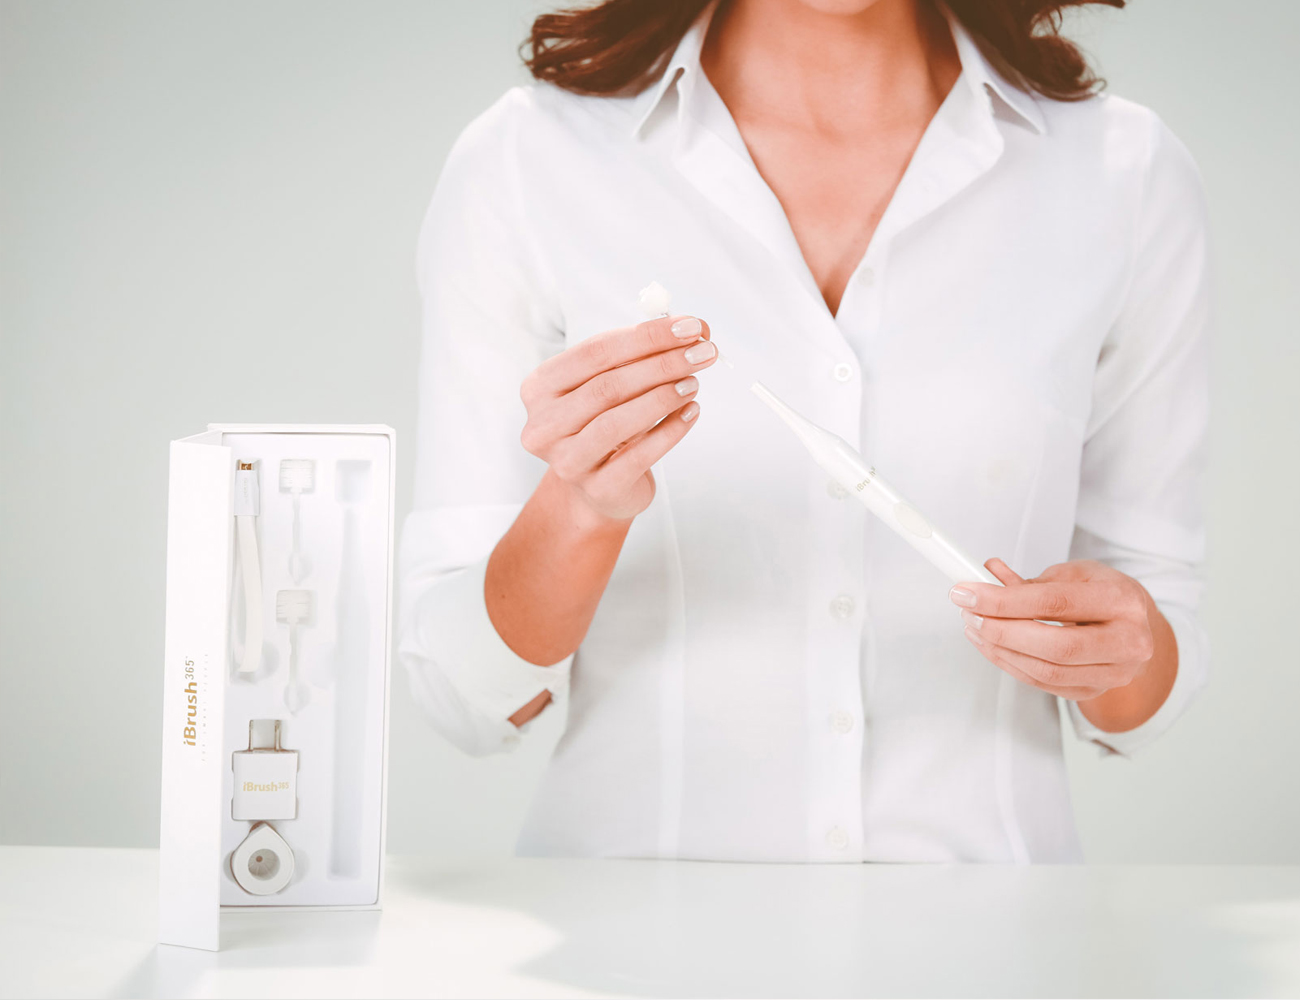 iBrush 365 World's First Round Disc Bristle Electric Toothbrush